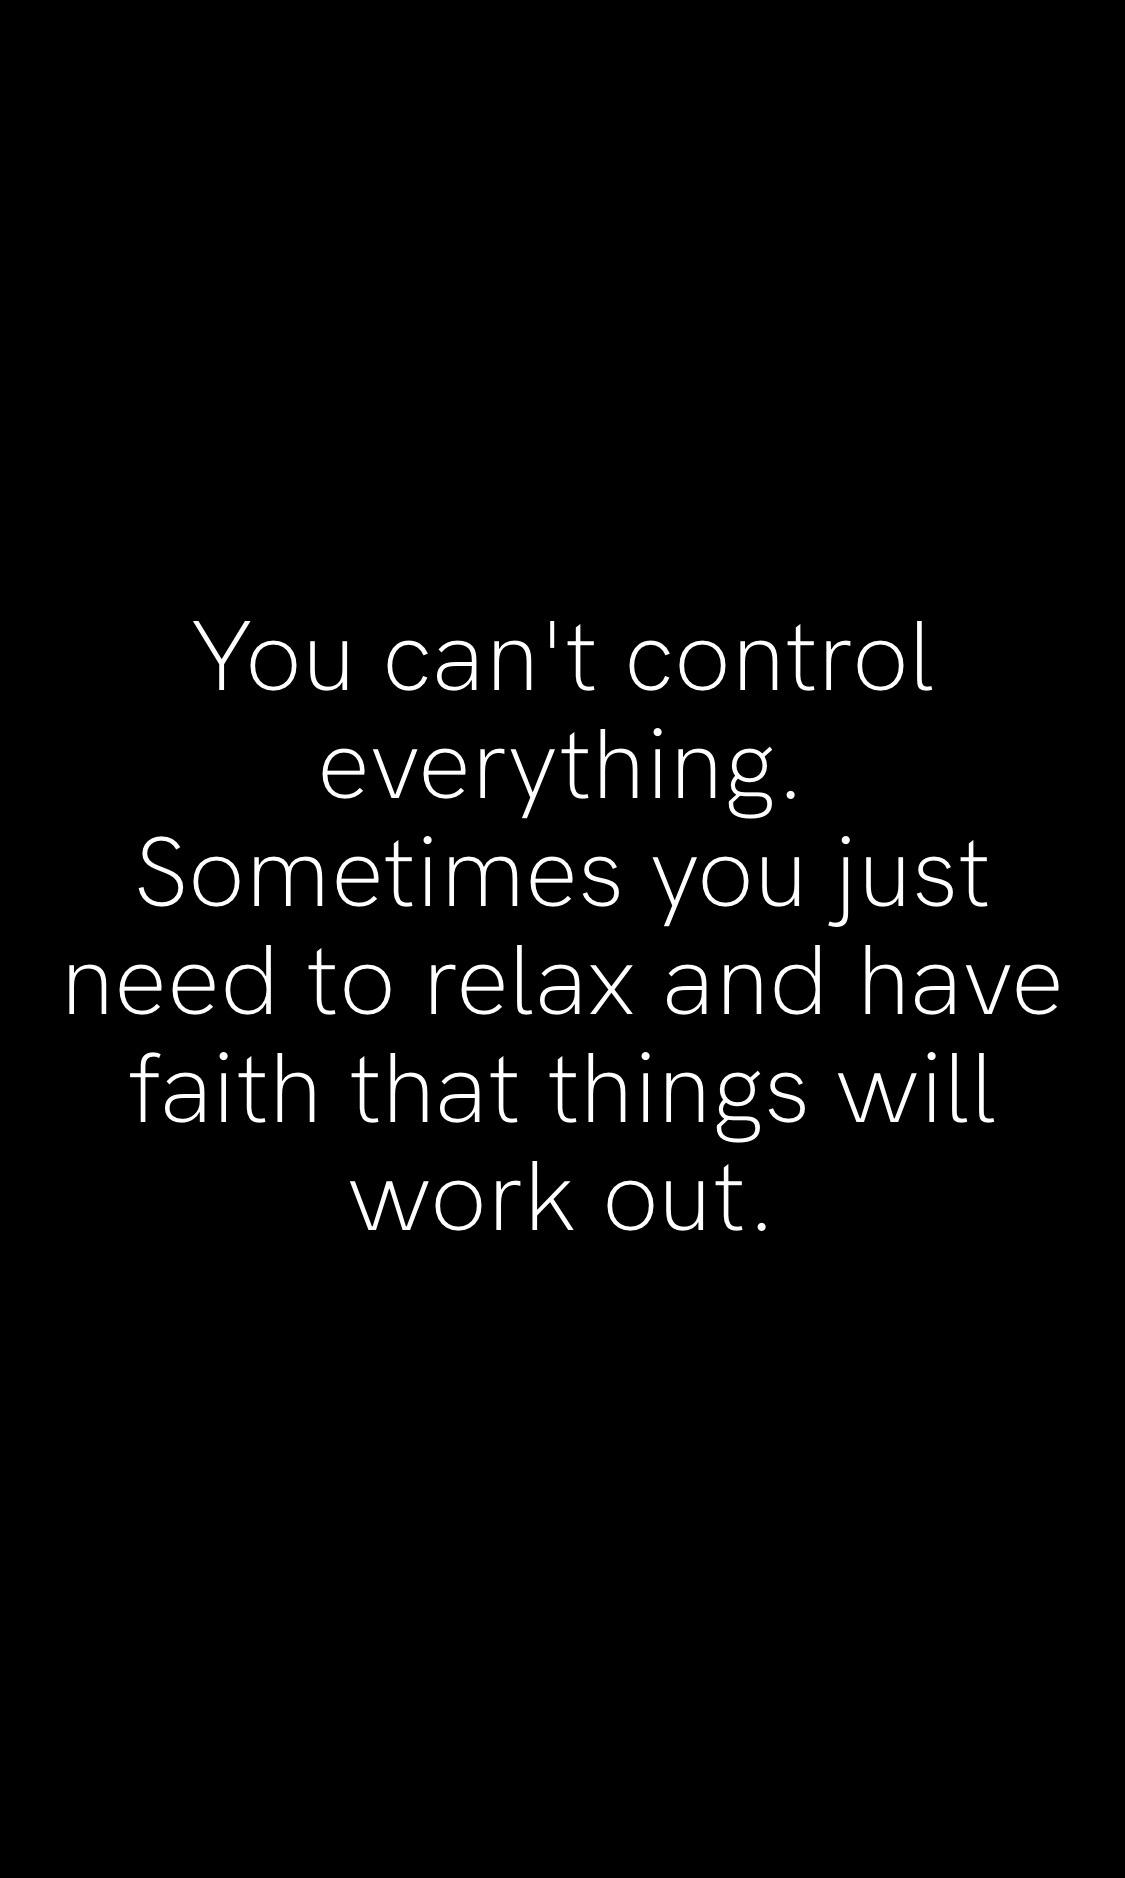 [Image] the biggest thing I learned in 2020 is to not waste mental energy on things you can't control